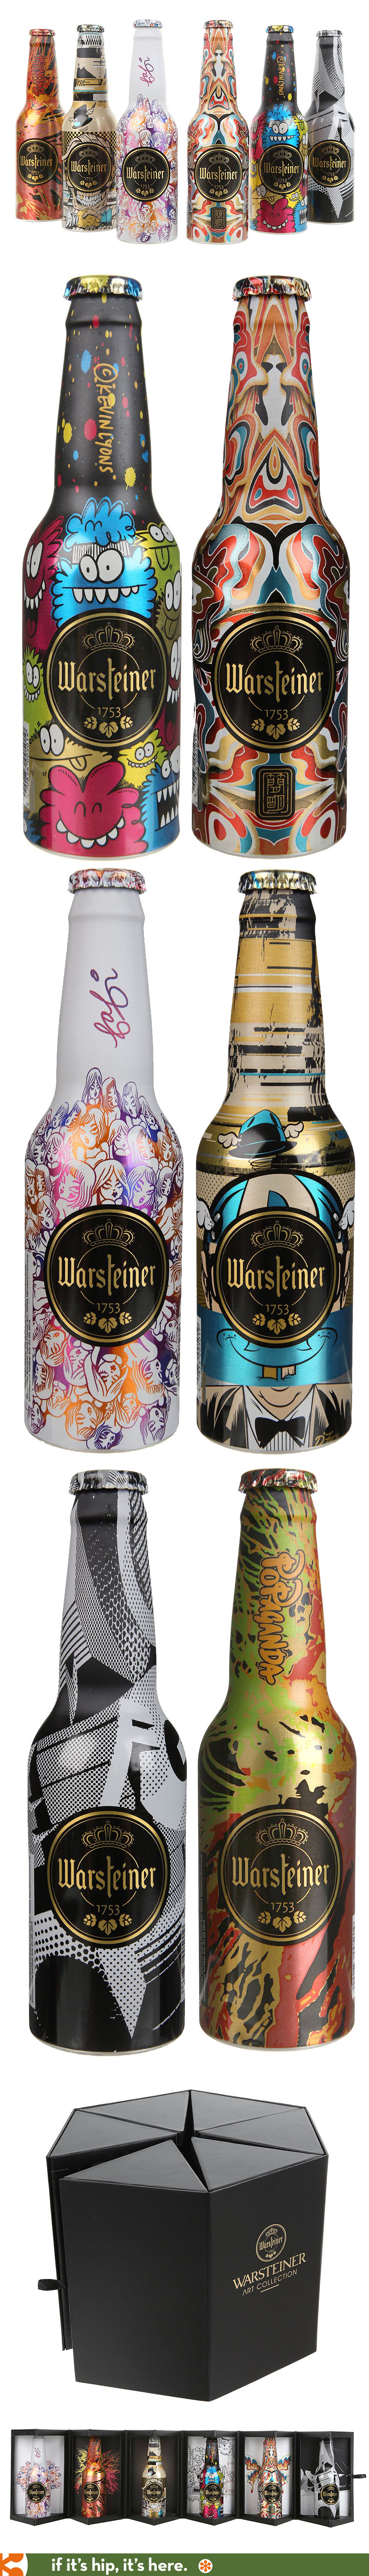 The 2014 Warsteiner Art Beer Collection. Six artist ...